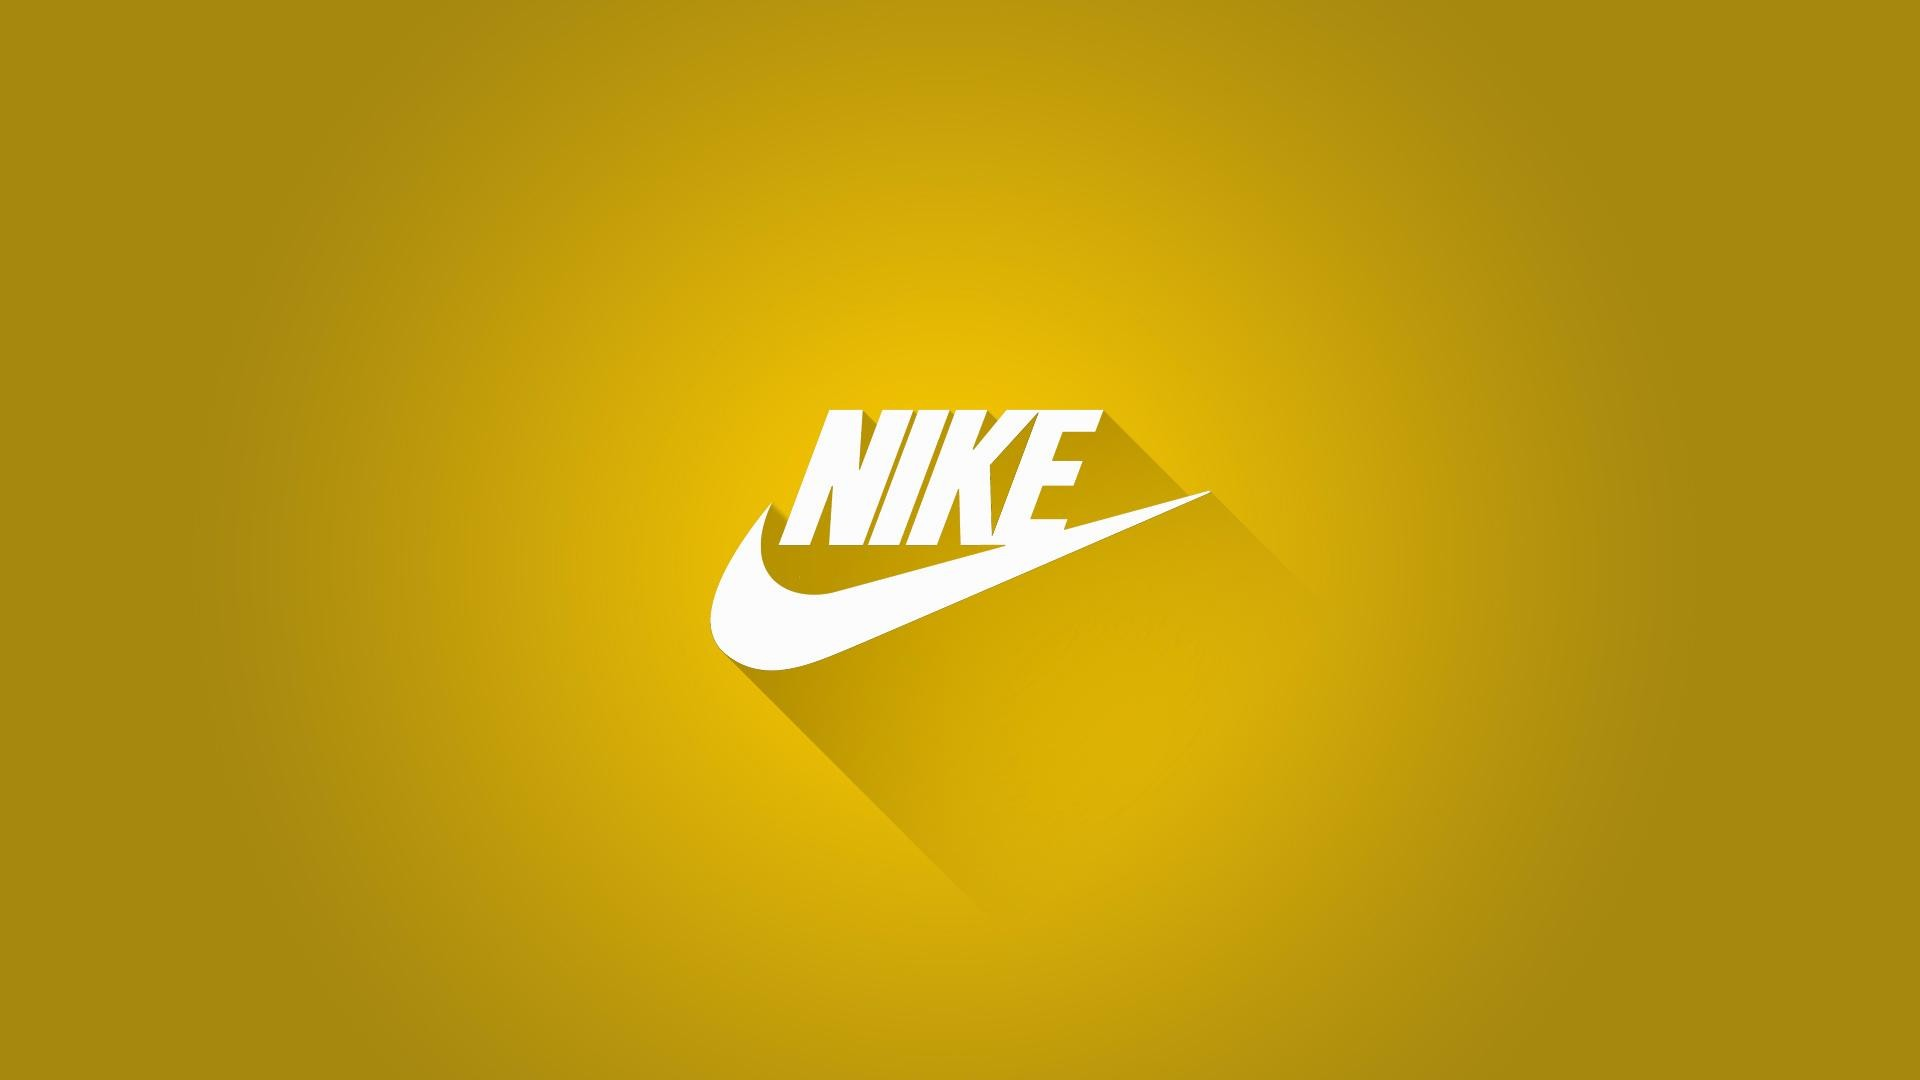 Nike-Wallpapers-and-Backgrounds